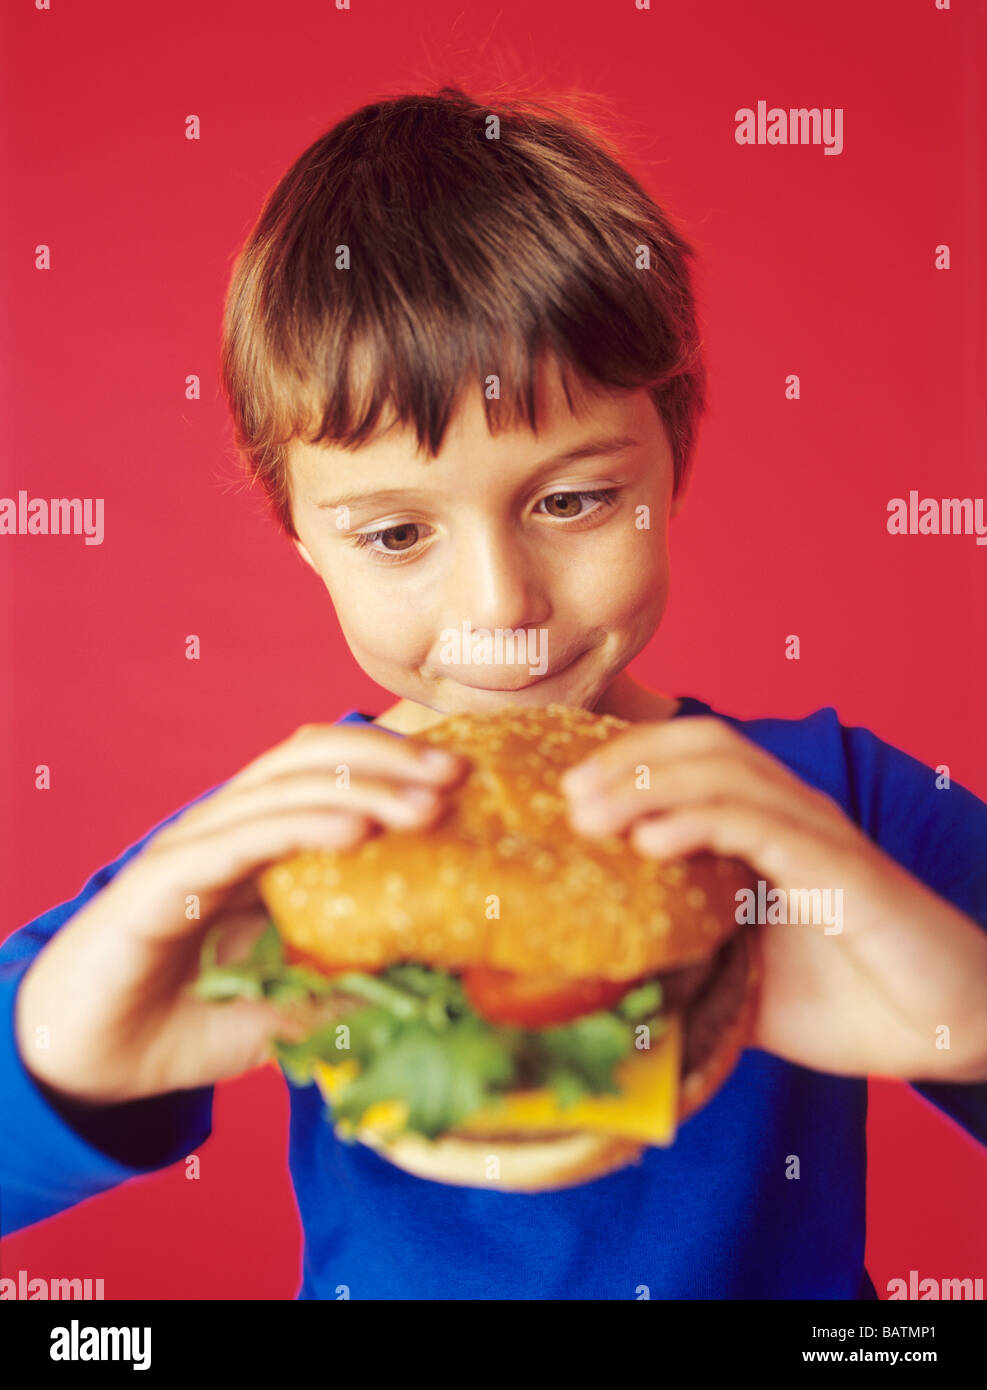 Fast food. 7-year-old boyeating a burger with cheese. If eaten in excess,such food can lead to obesity and heart - Stock Image